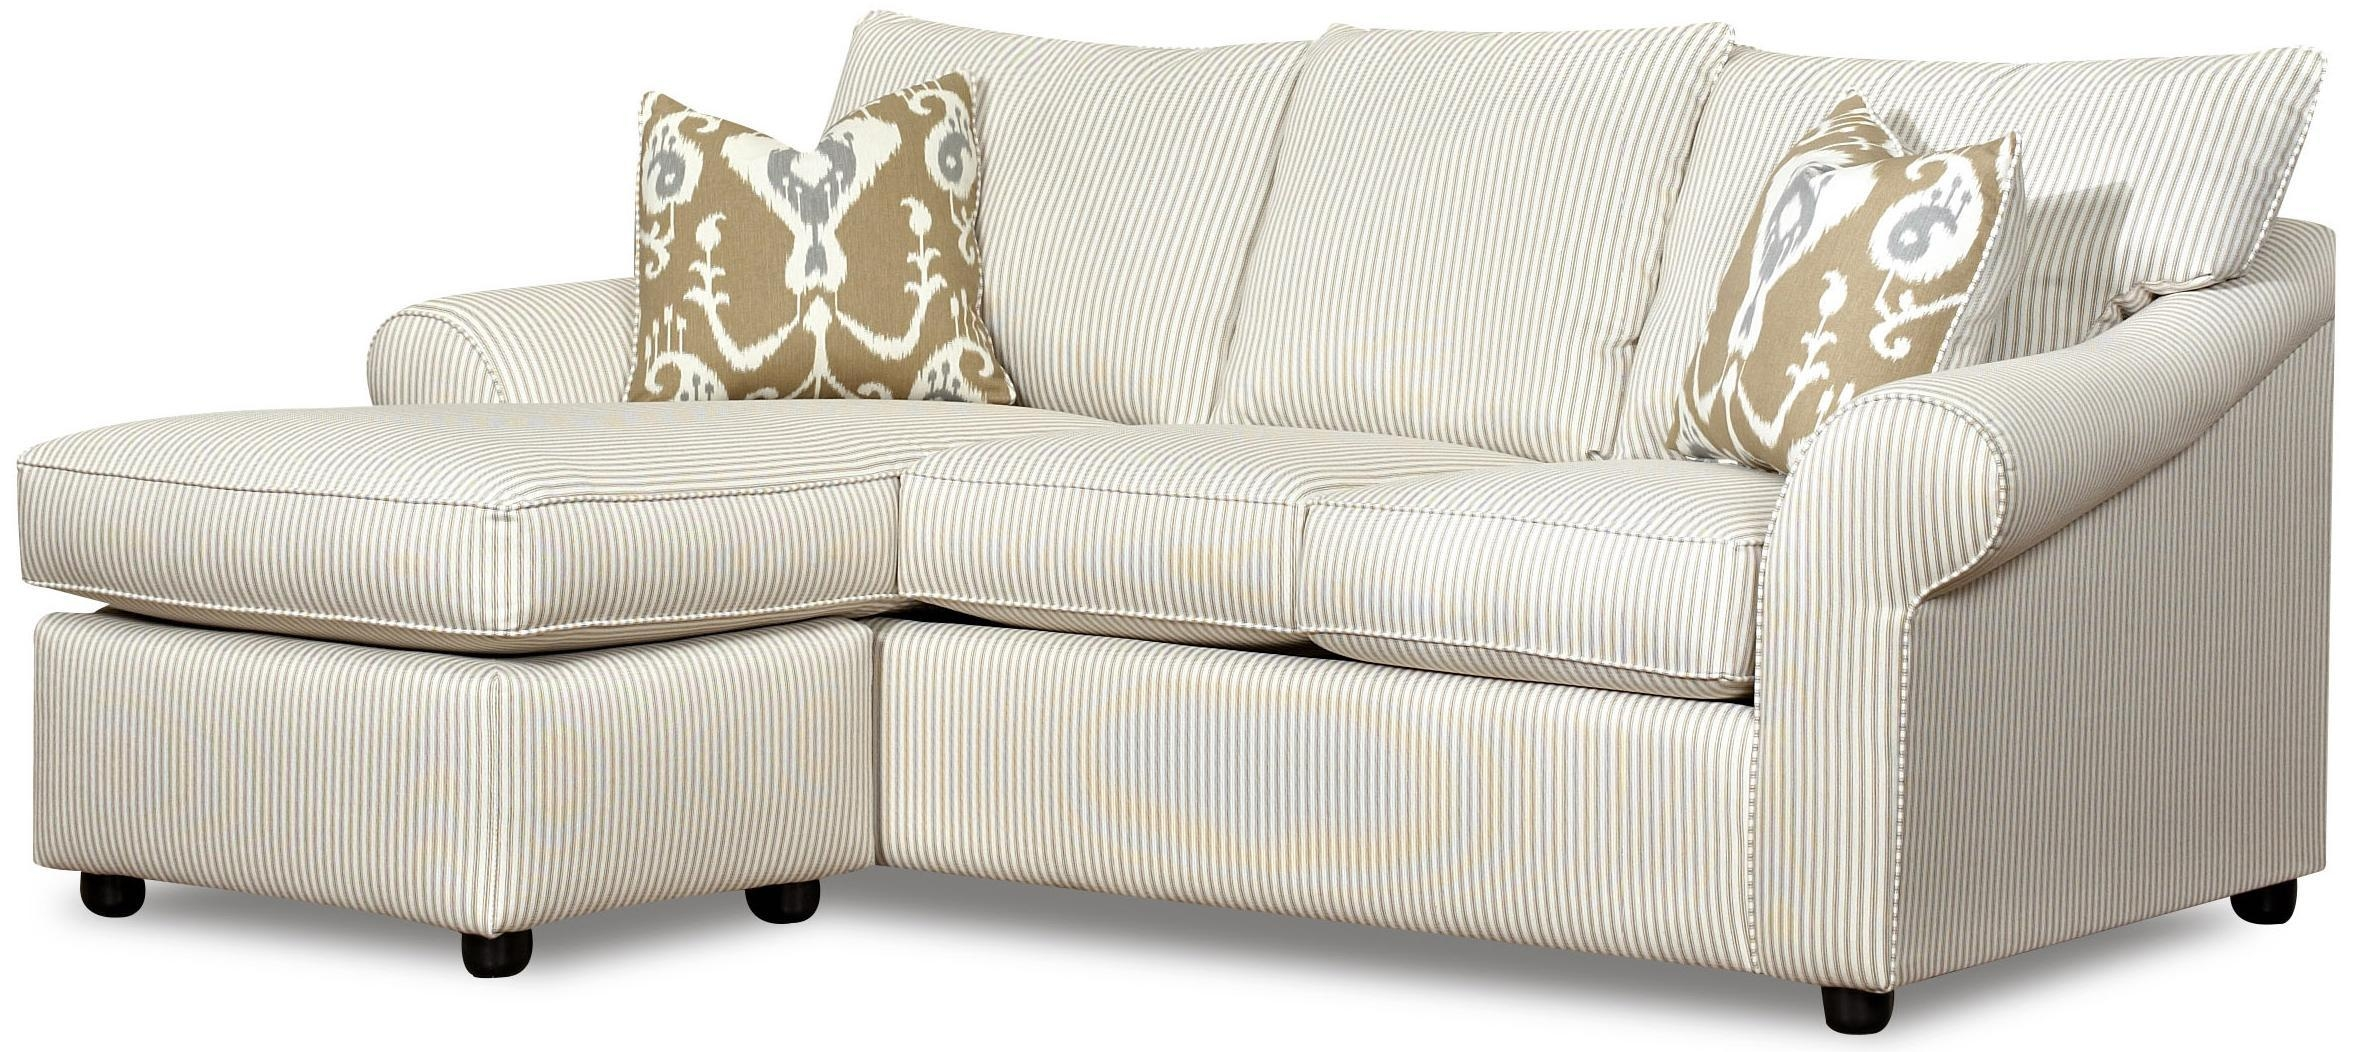 20 top sofas with chaise longue sofa ideas - Sofa bed with chaise lounge ...